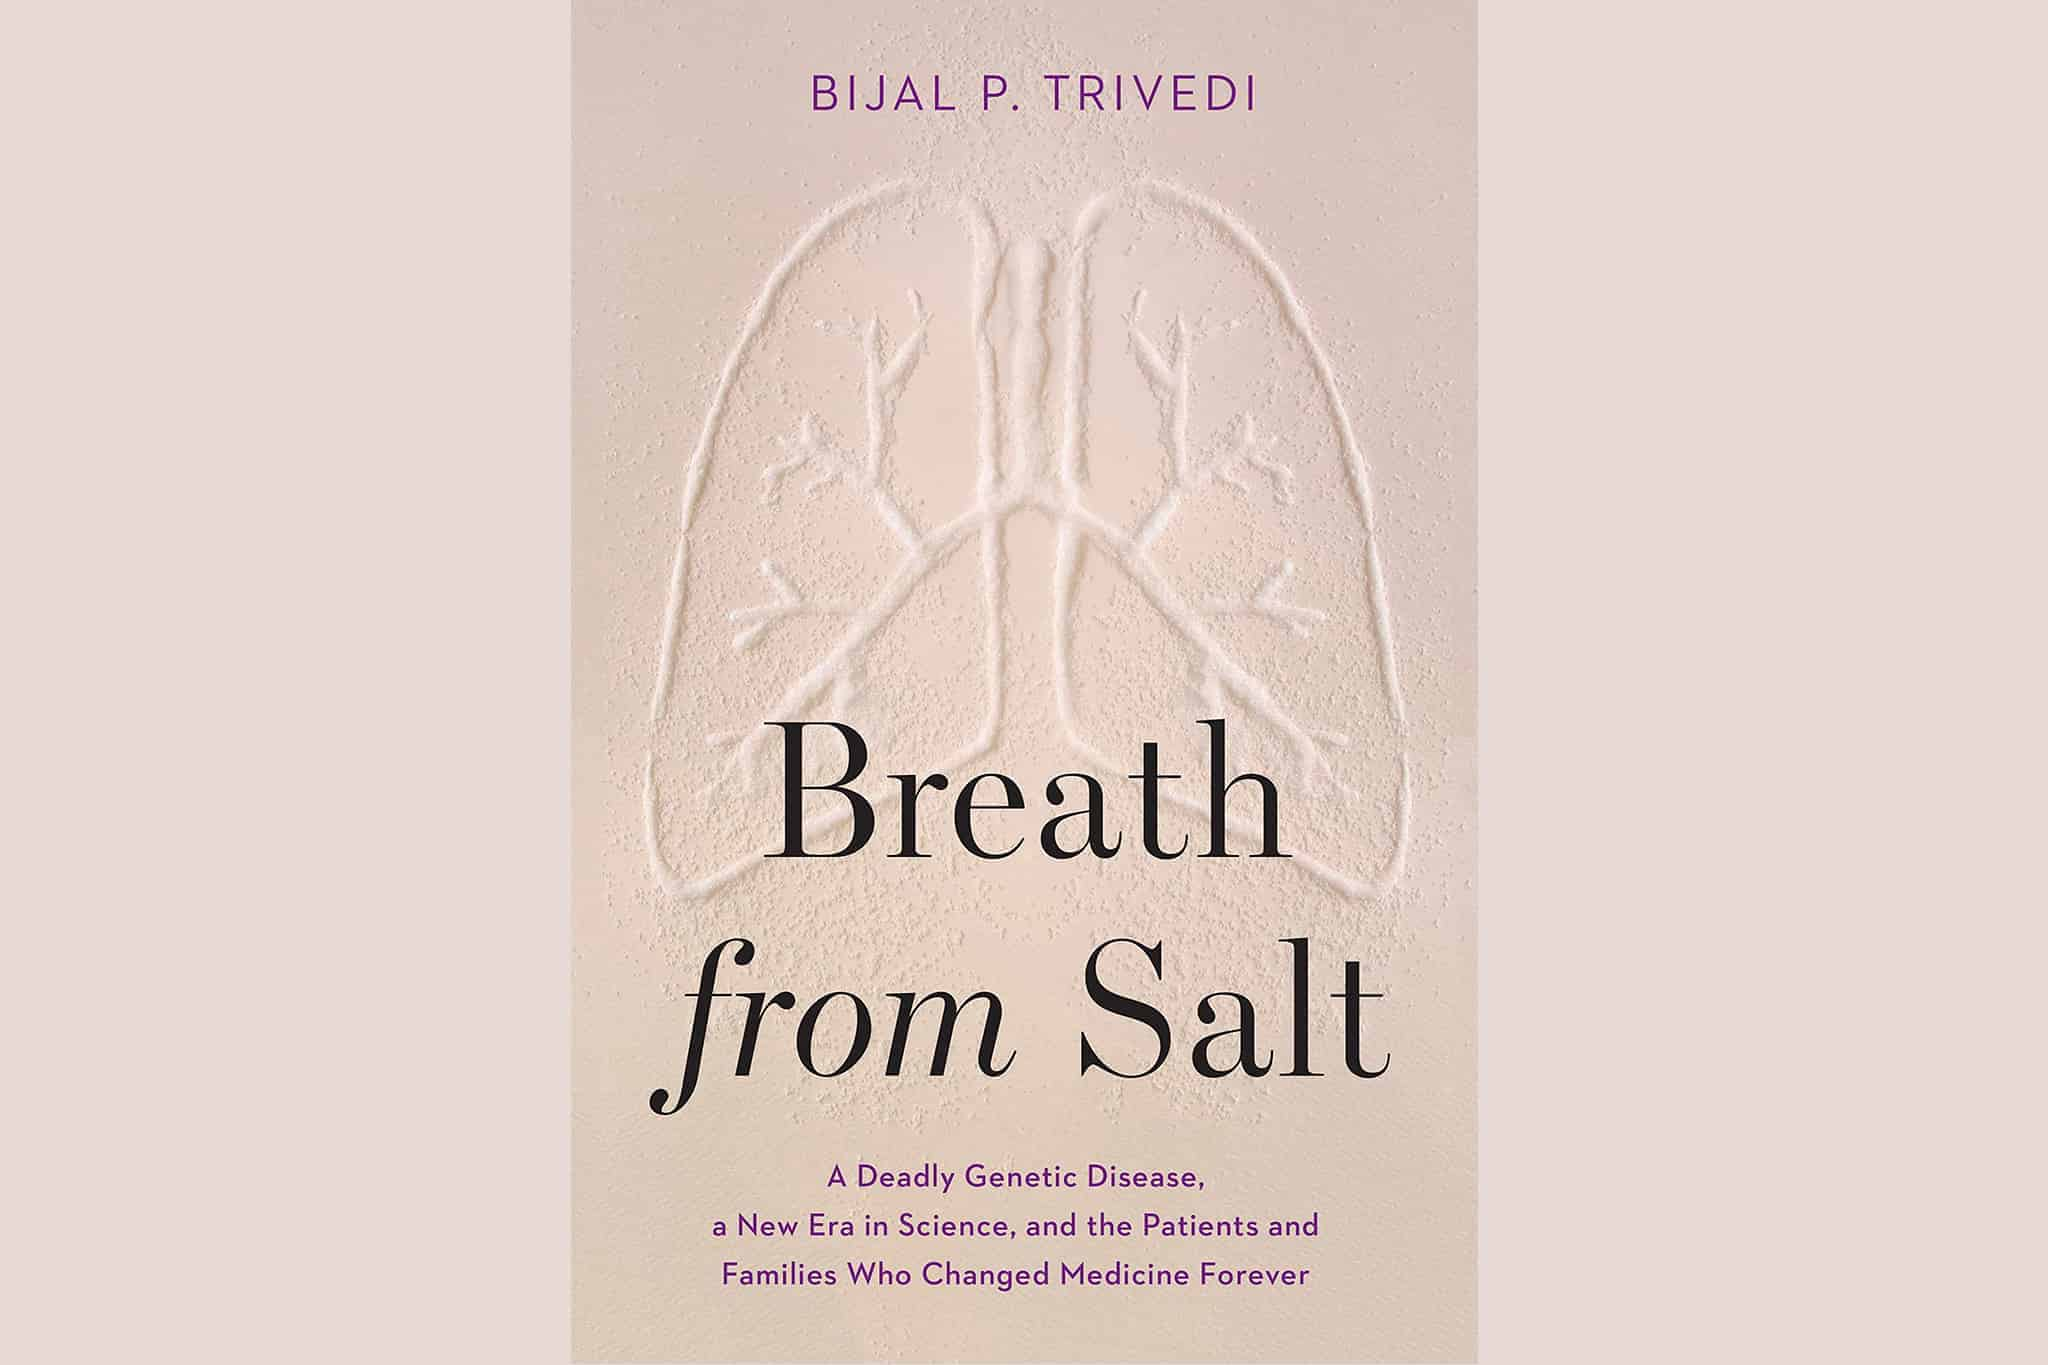 Breath From Salt - A Deadly Genetic Disease A New Era In Science And The Patients And Families Who Changed Medicine Forever By Bijal P. Trivedi